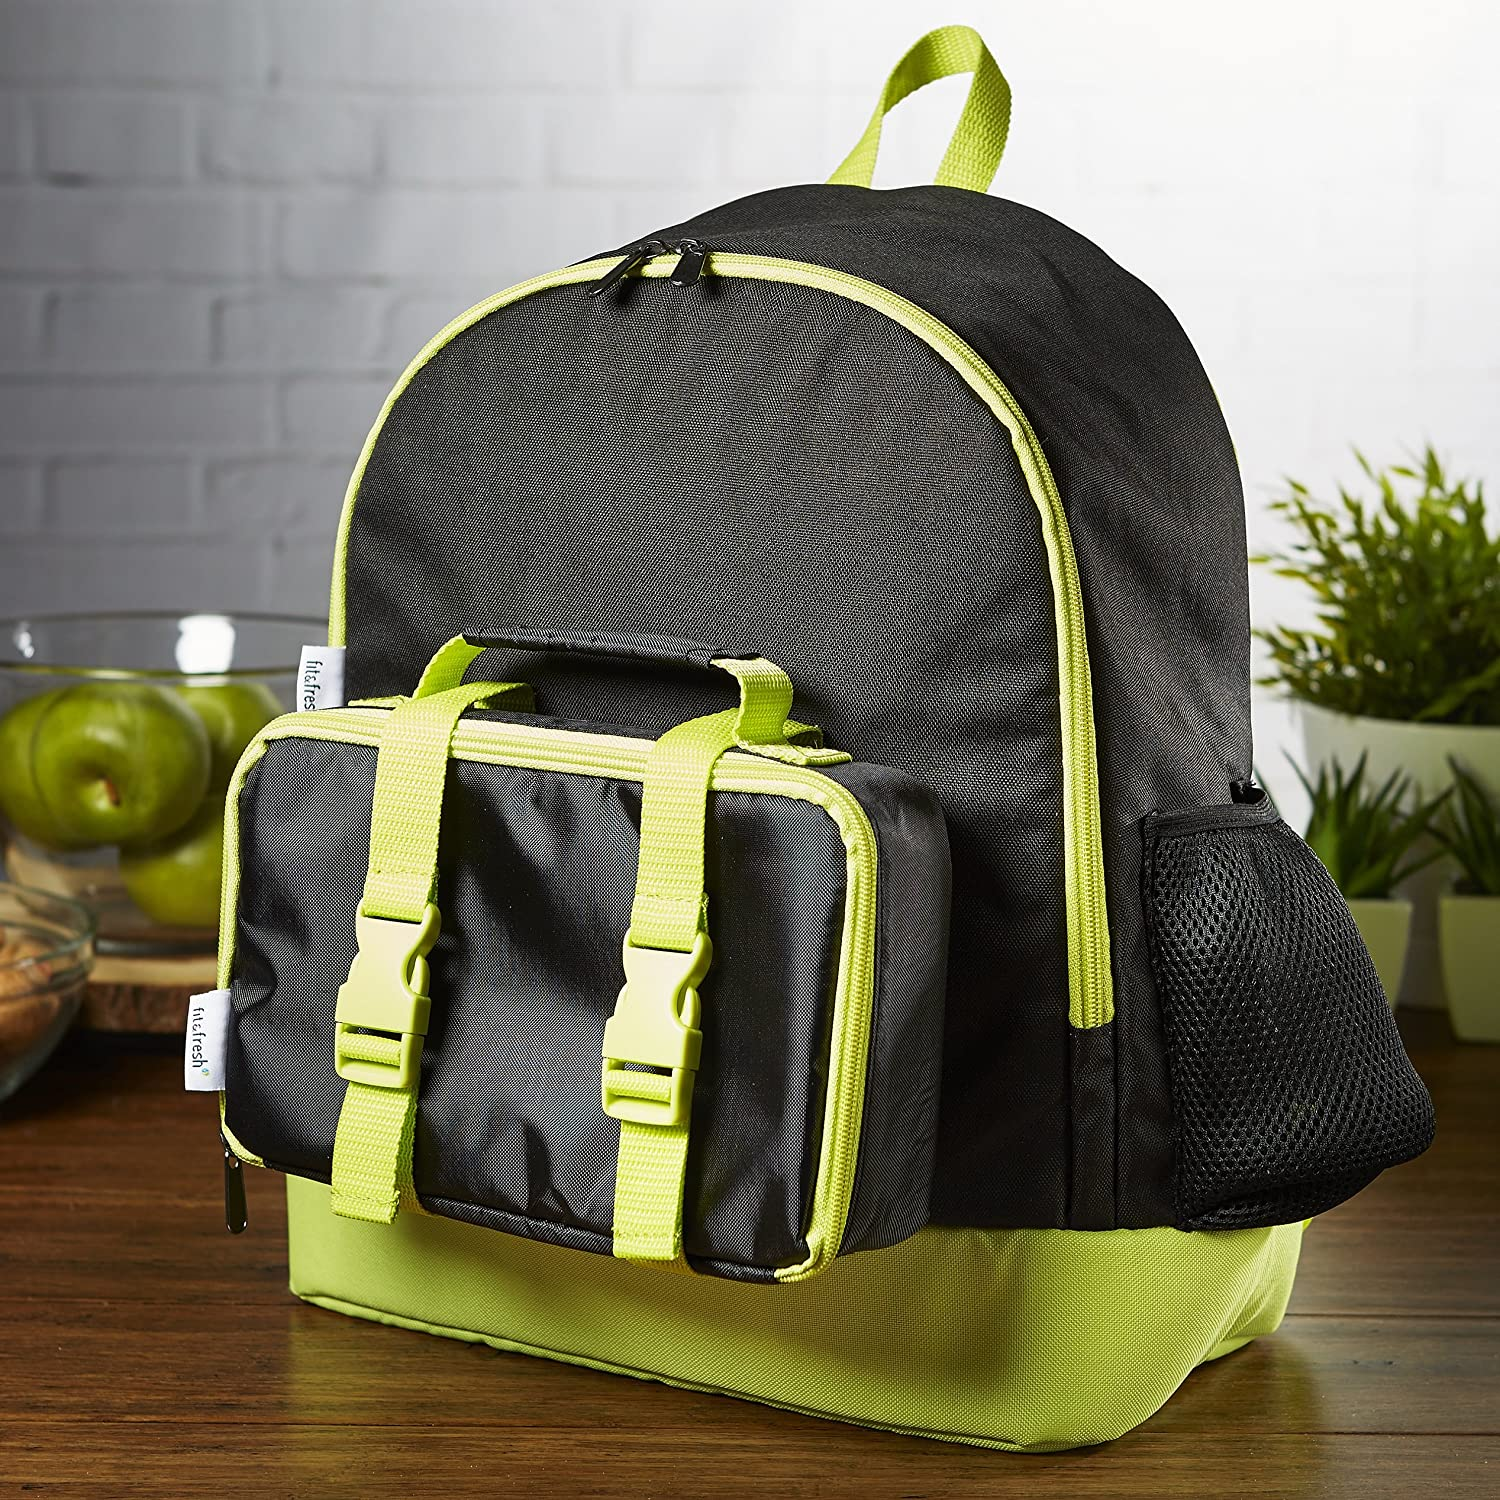 Black & Neon Fit & Fresh Kids' School Backpack with Bento Lunch Box (Black & Neon)